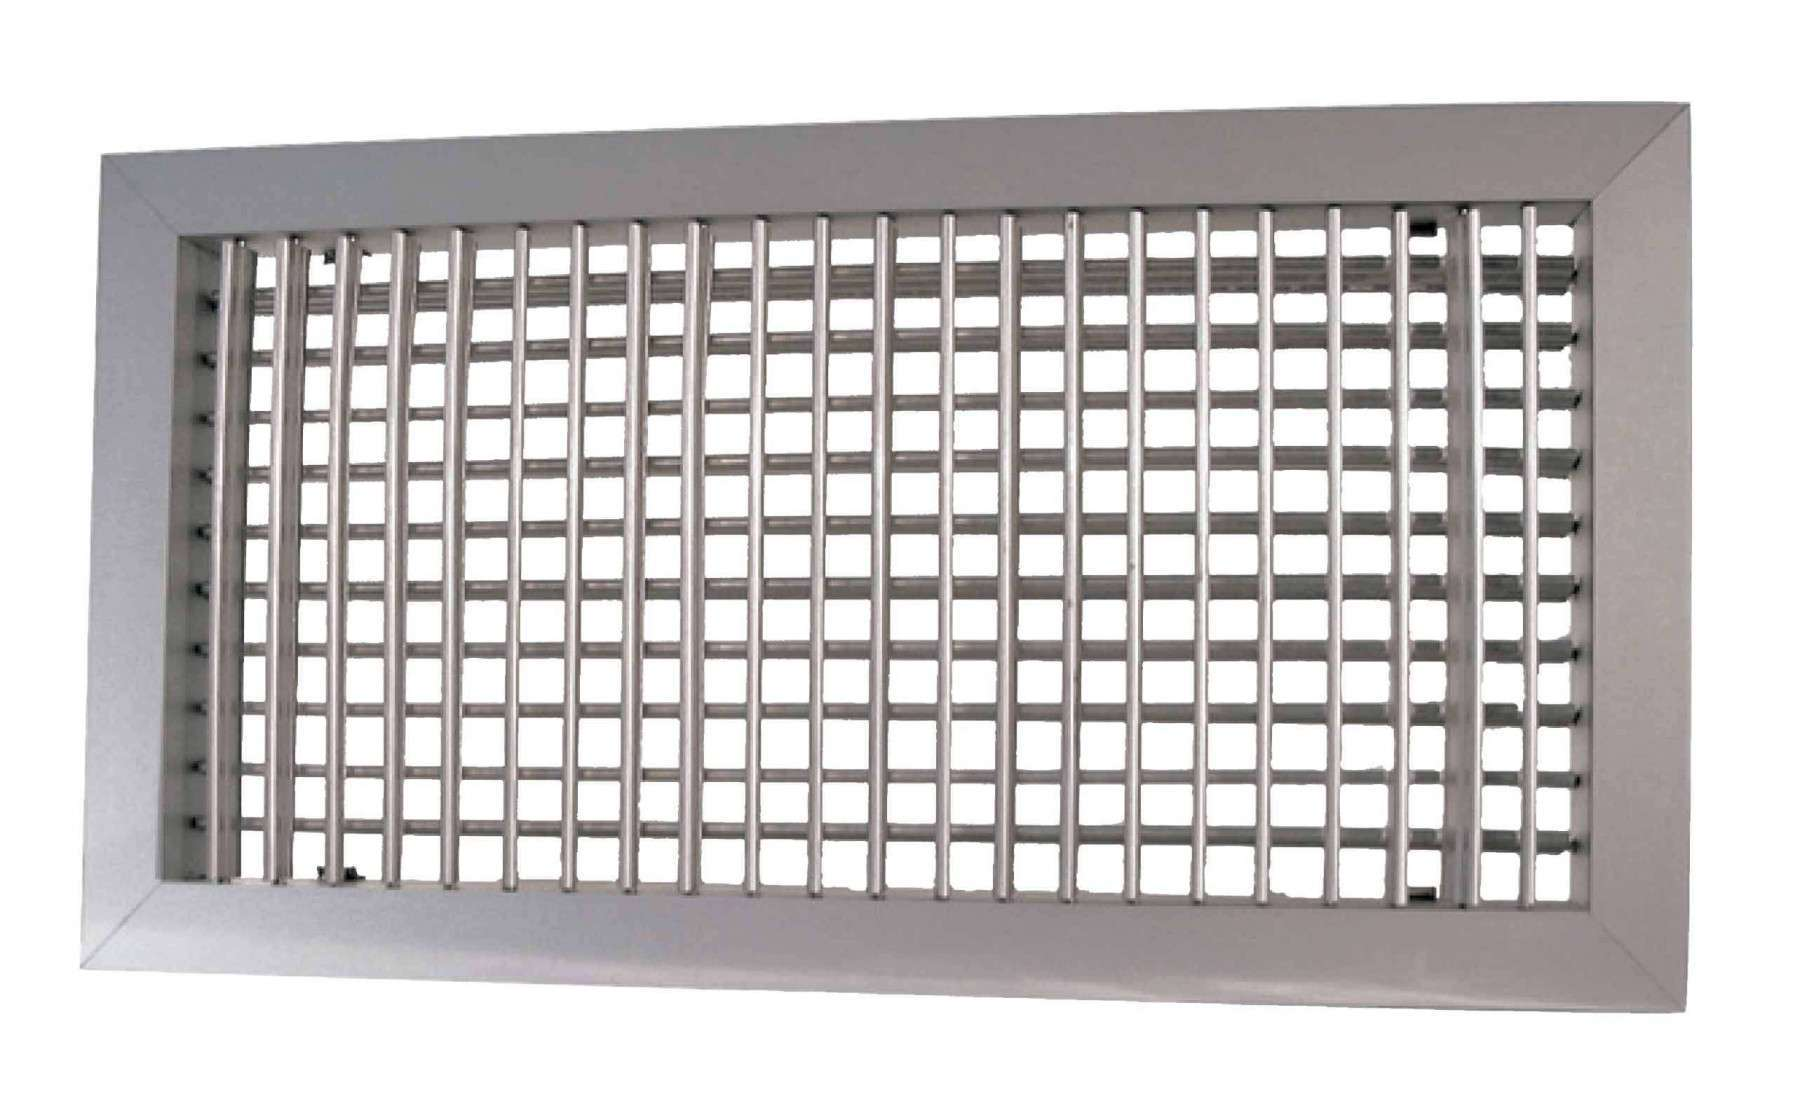 GAO D B 300/150 UNELVENT GRILLE A MAILLES FIXES 858452